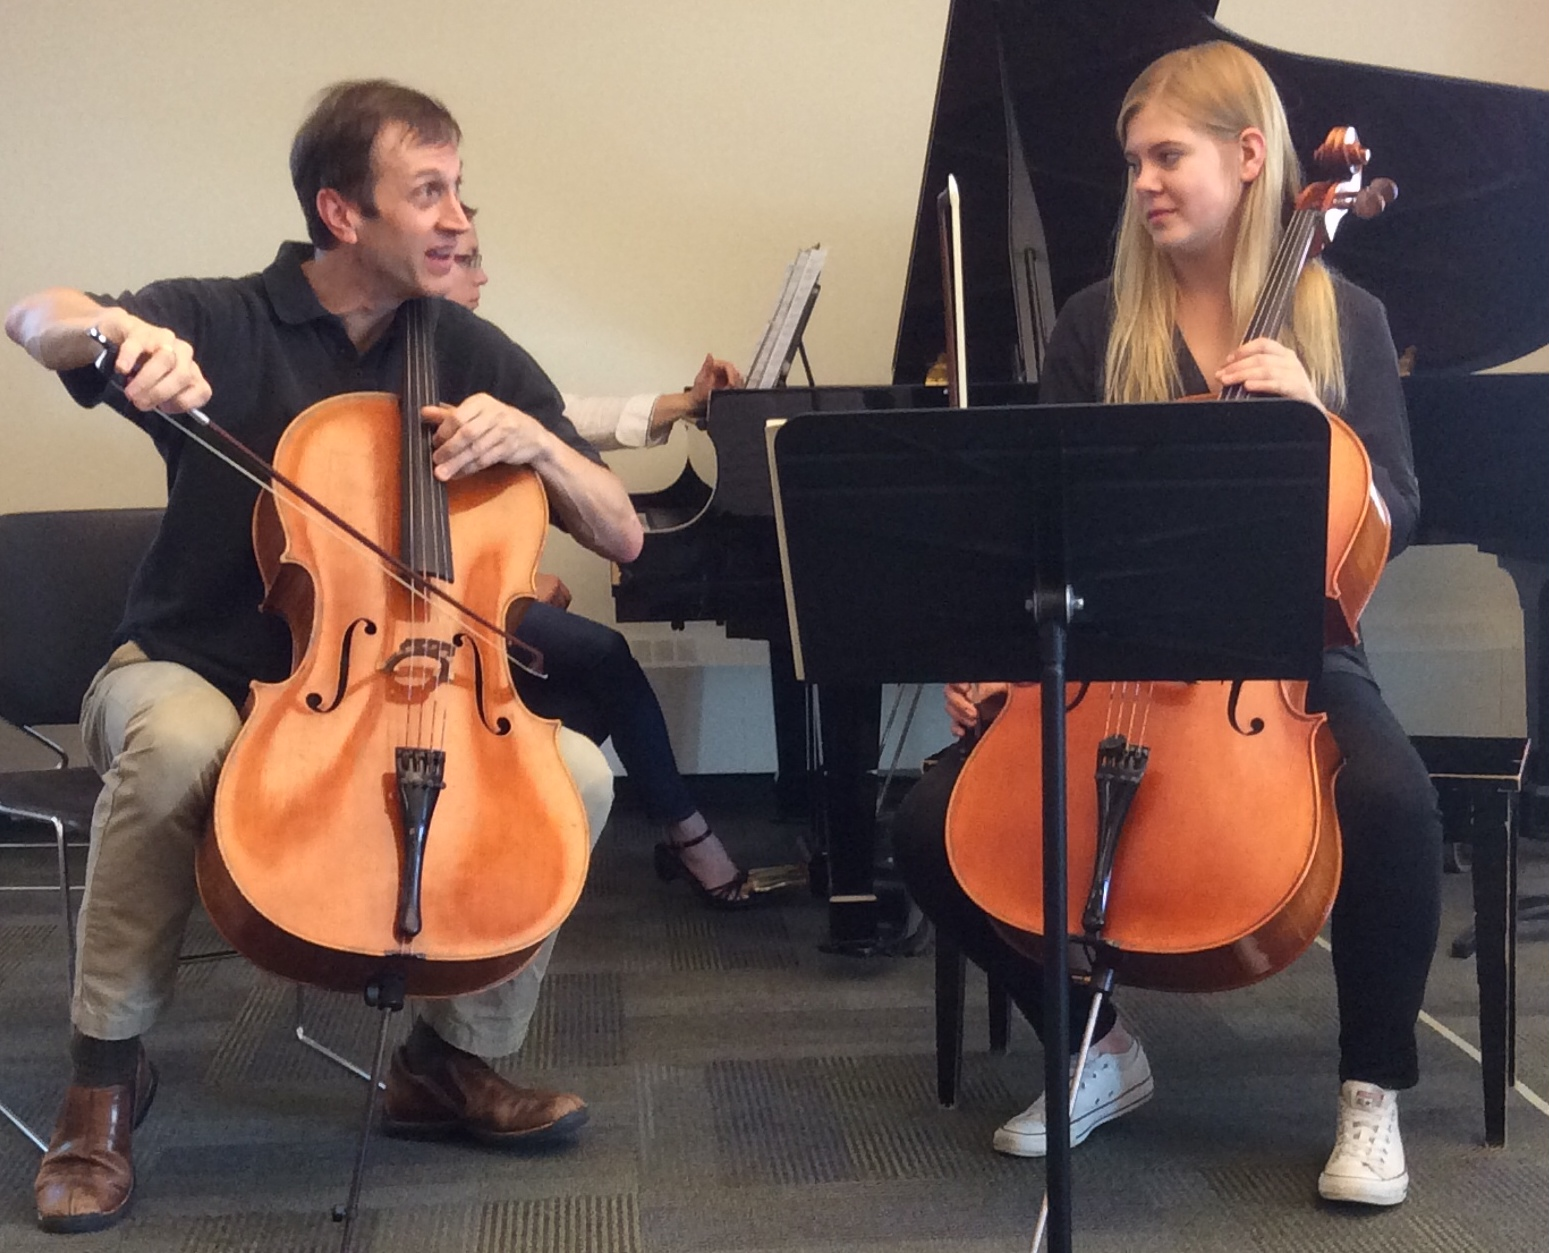 New Orford String Quartet cellist Brian Manker instructs Zophia, a 17-year-old student from Poland, during a master class at Morningside Music Bridge in Calgary.